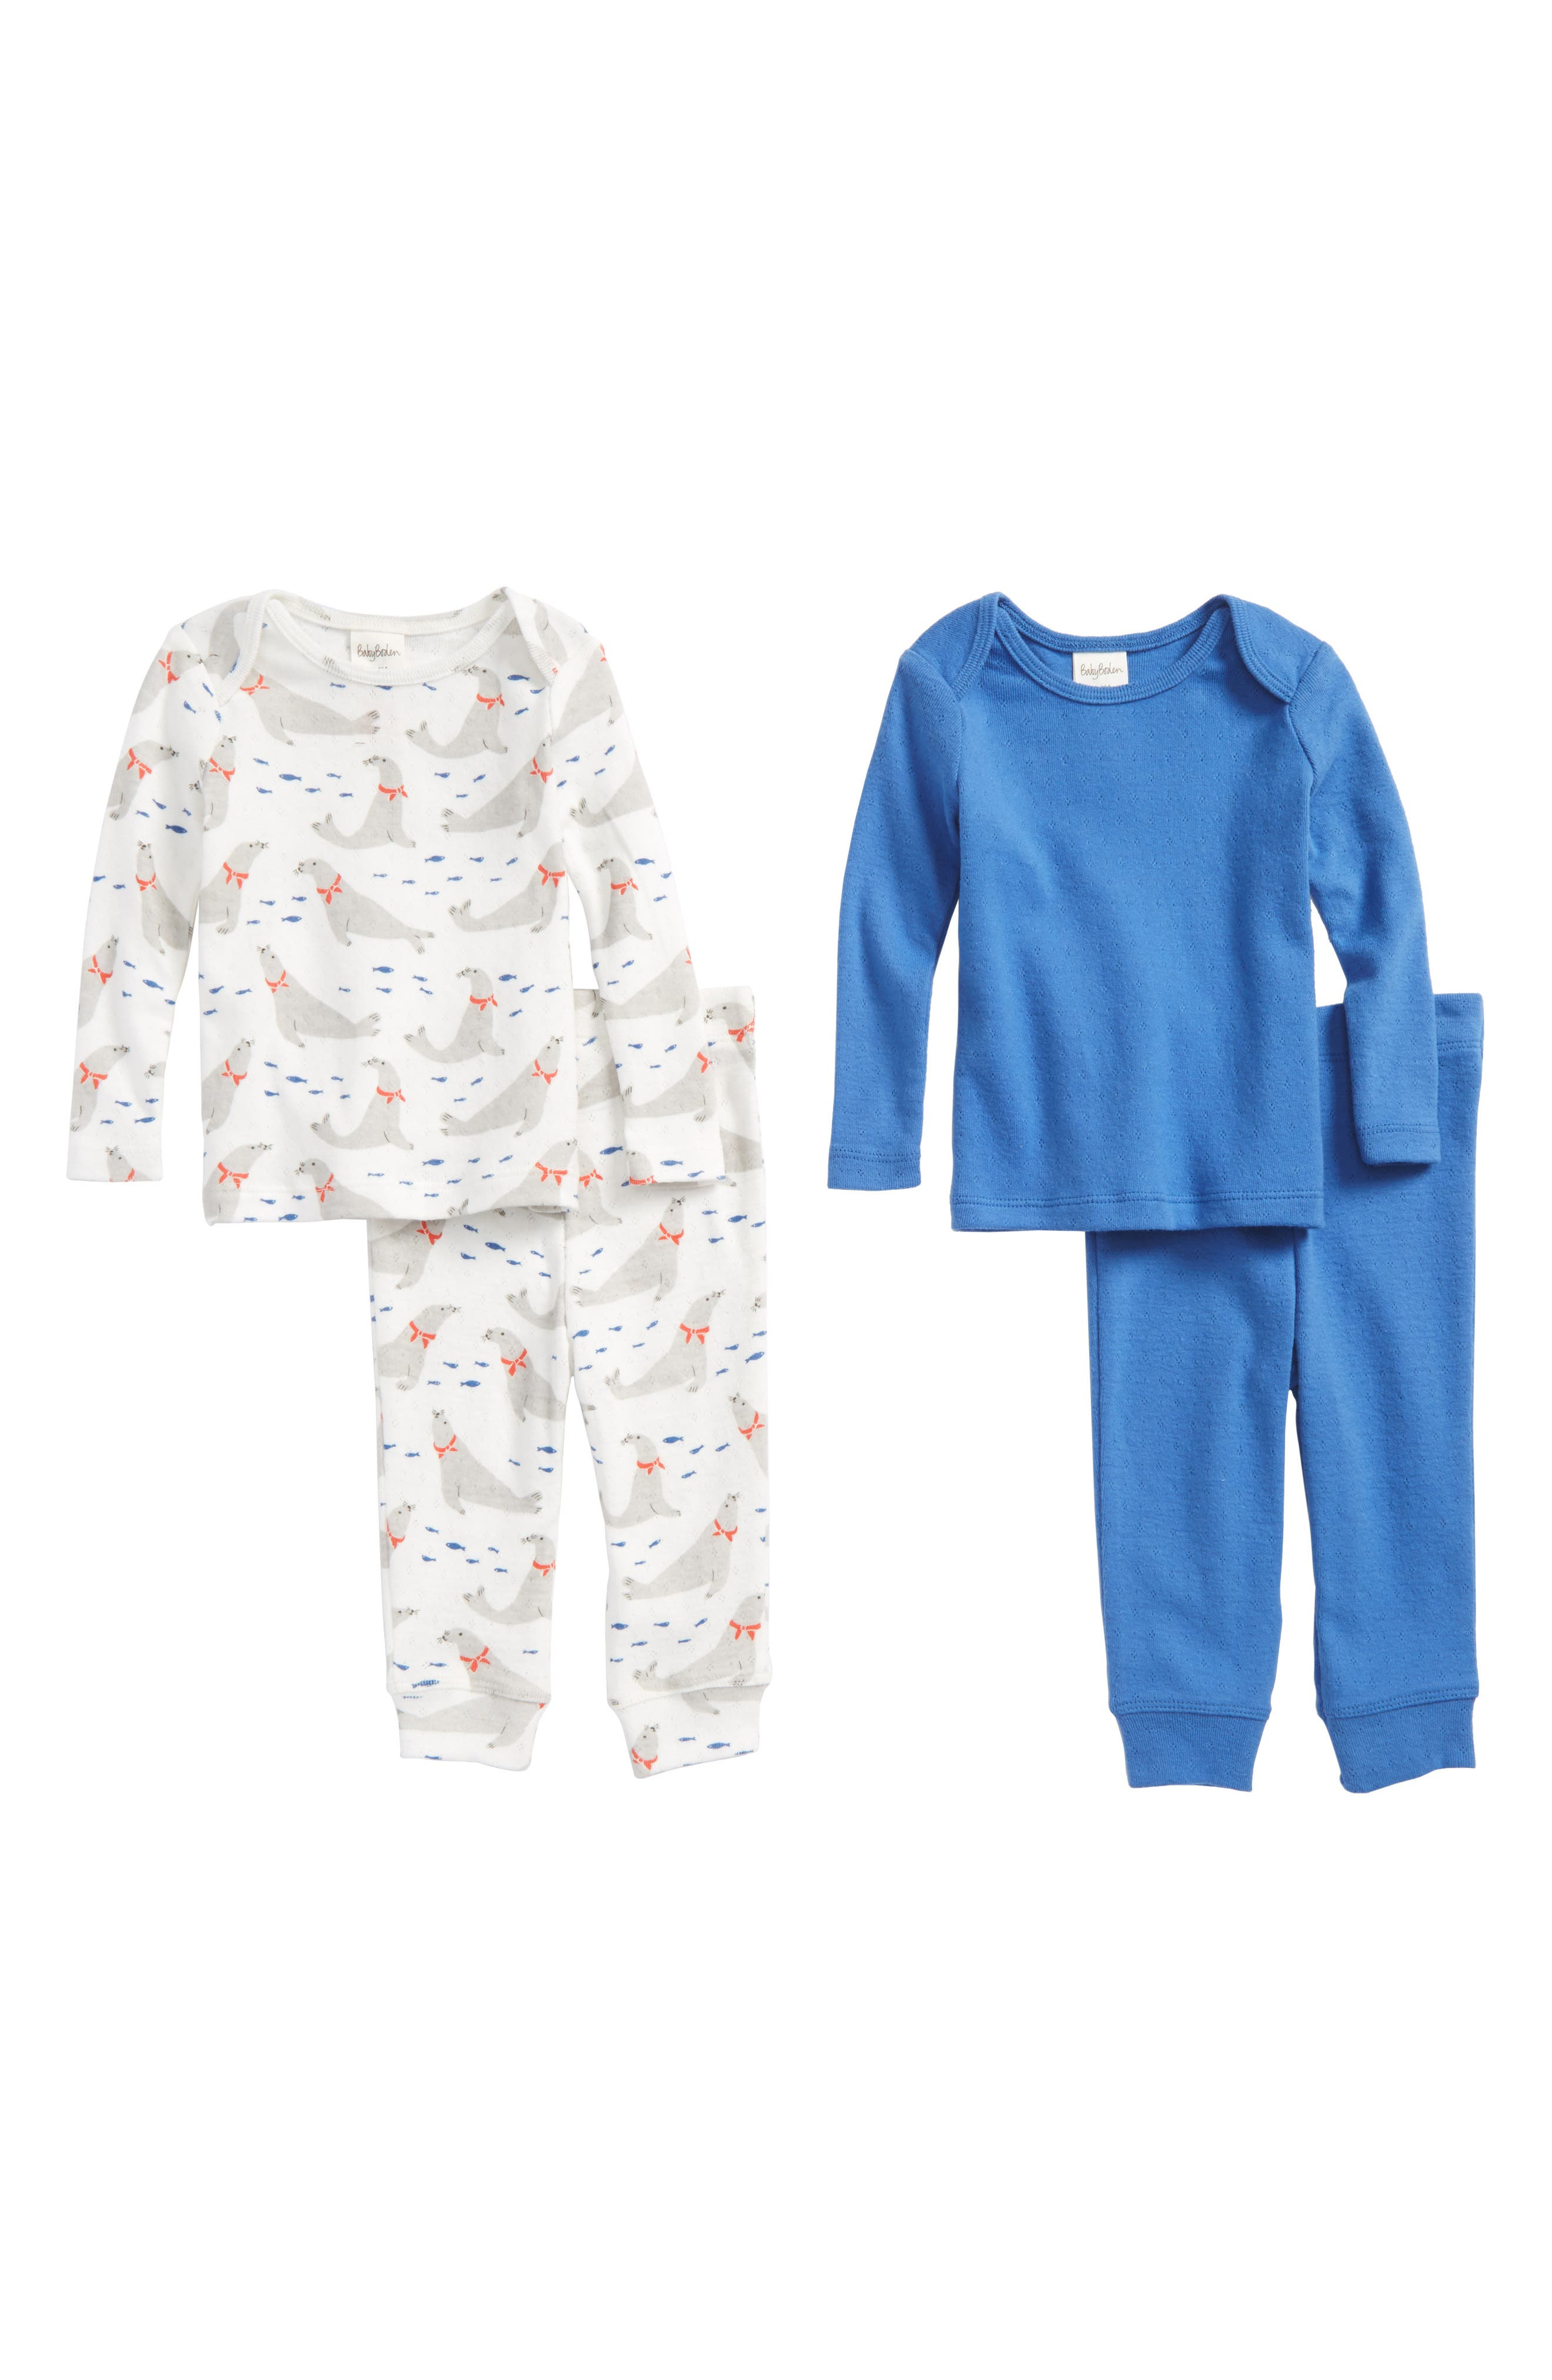 Pointelle 4-Piece Fitted Pajama Set,                             Main thumbnail 1, color,